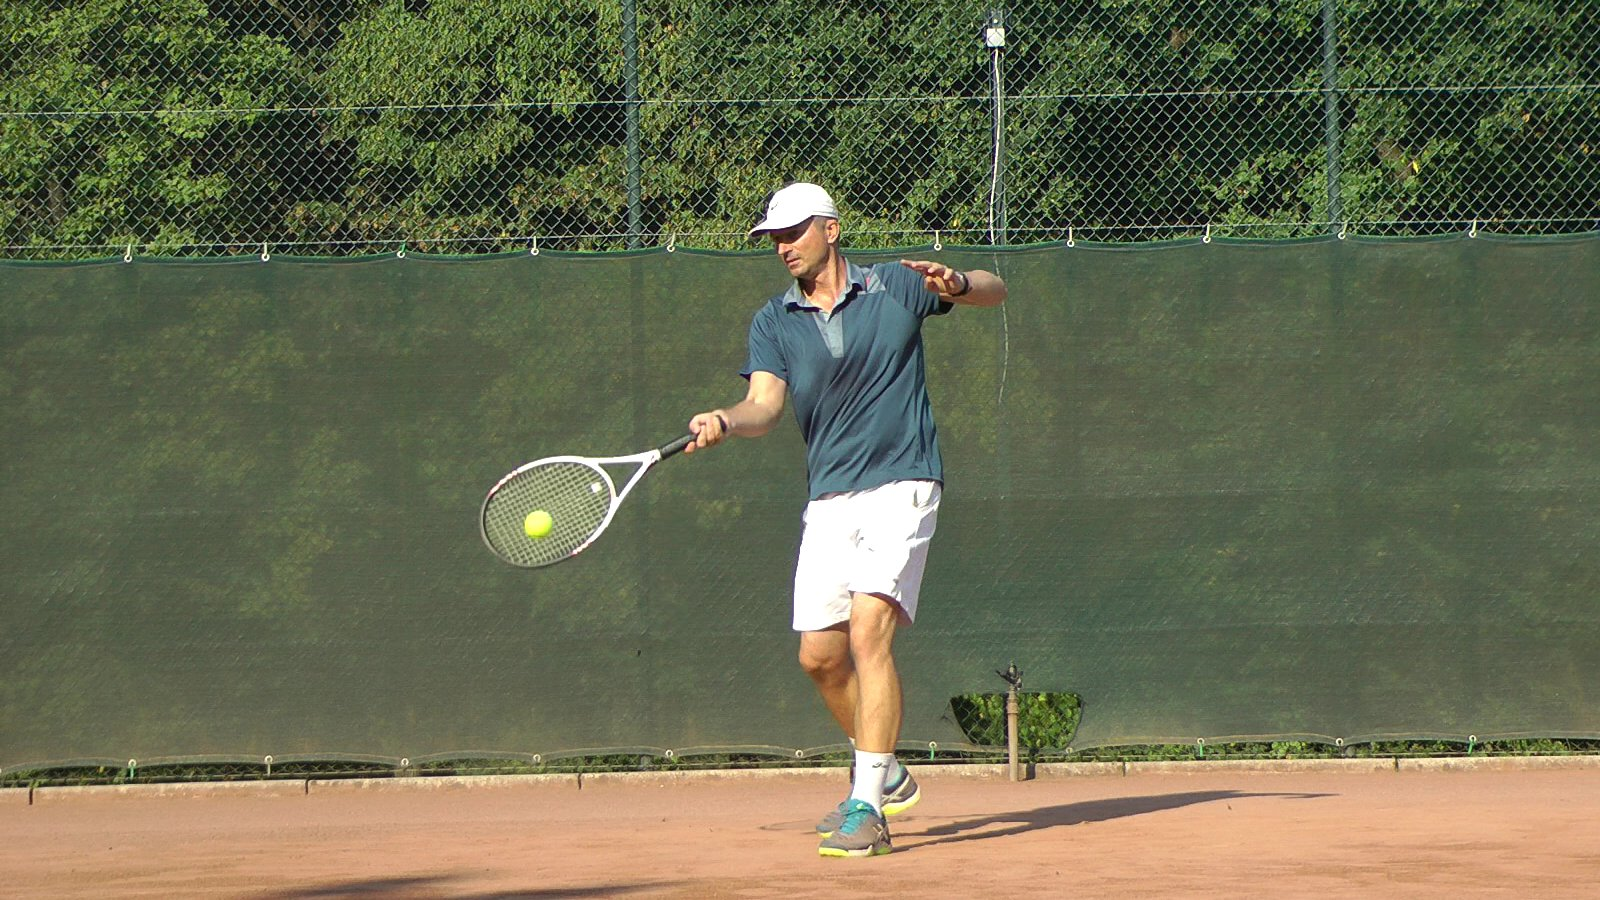 Tennis Forehand Technique - 8 Steps To A Modern Forehand | Feel Tennis